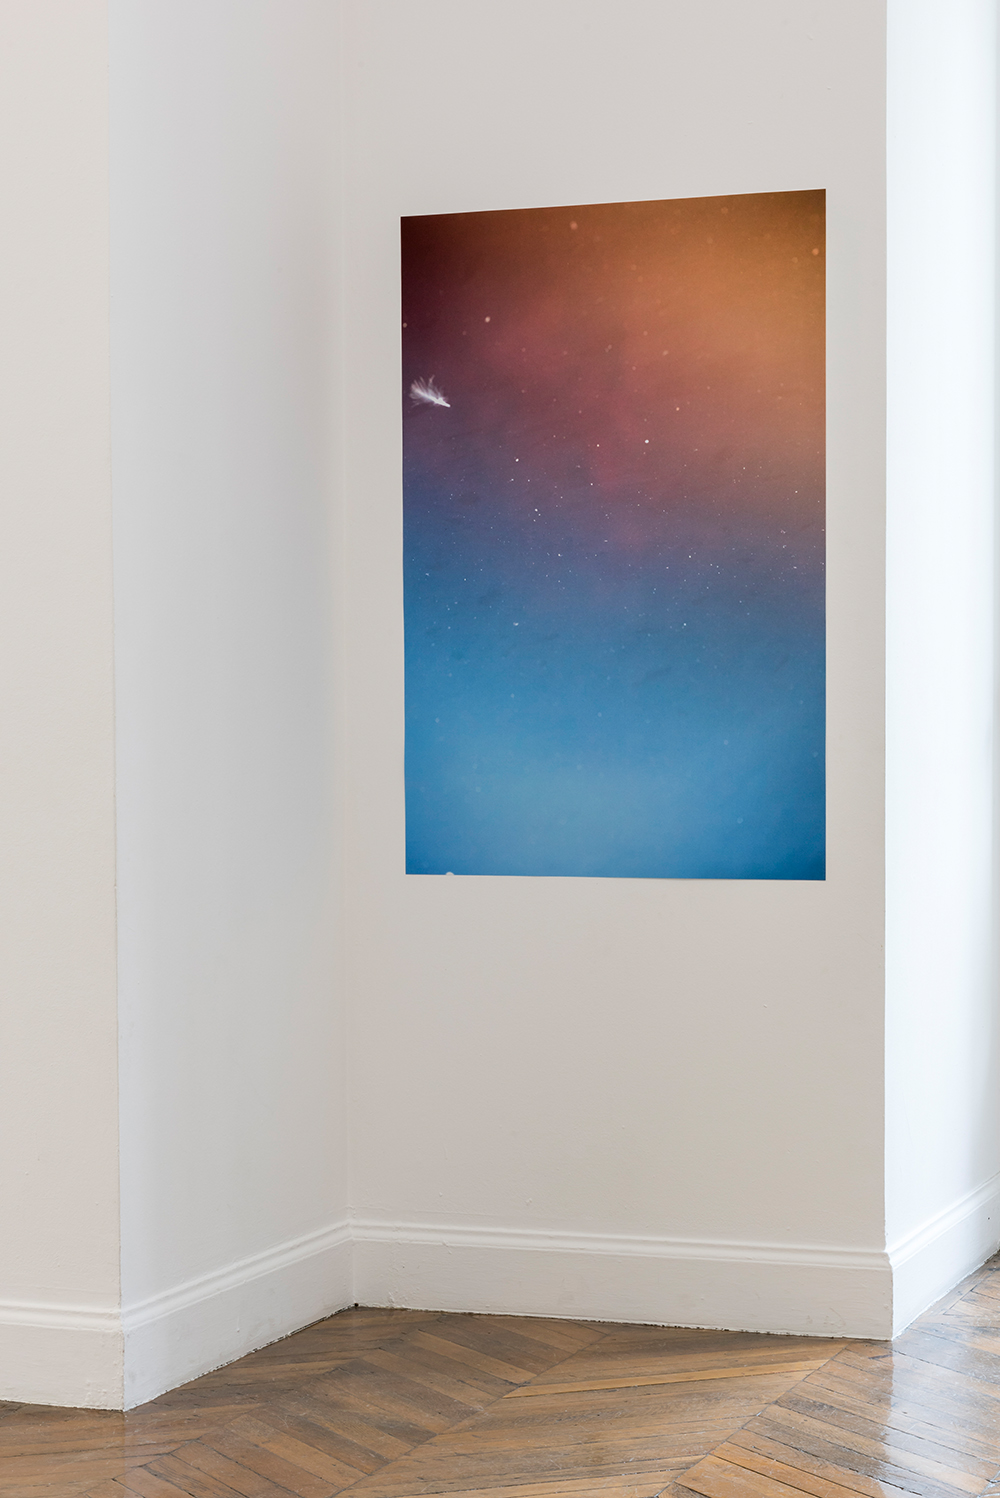 Alicia Frankovich They Gave us their Moon, 2016 Photographie 80 x 120 cm Courtesy de l'artiste Photo : Pierre Antoine, 2016